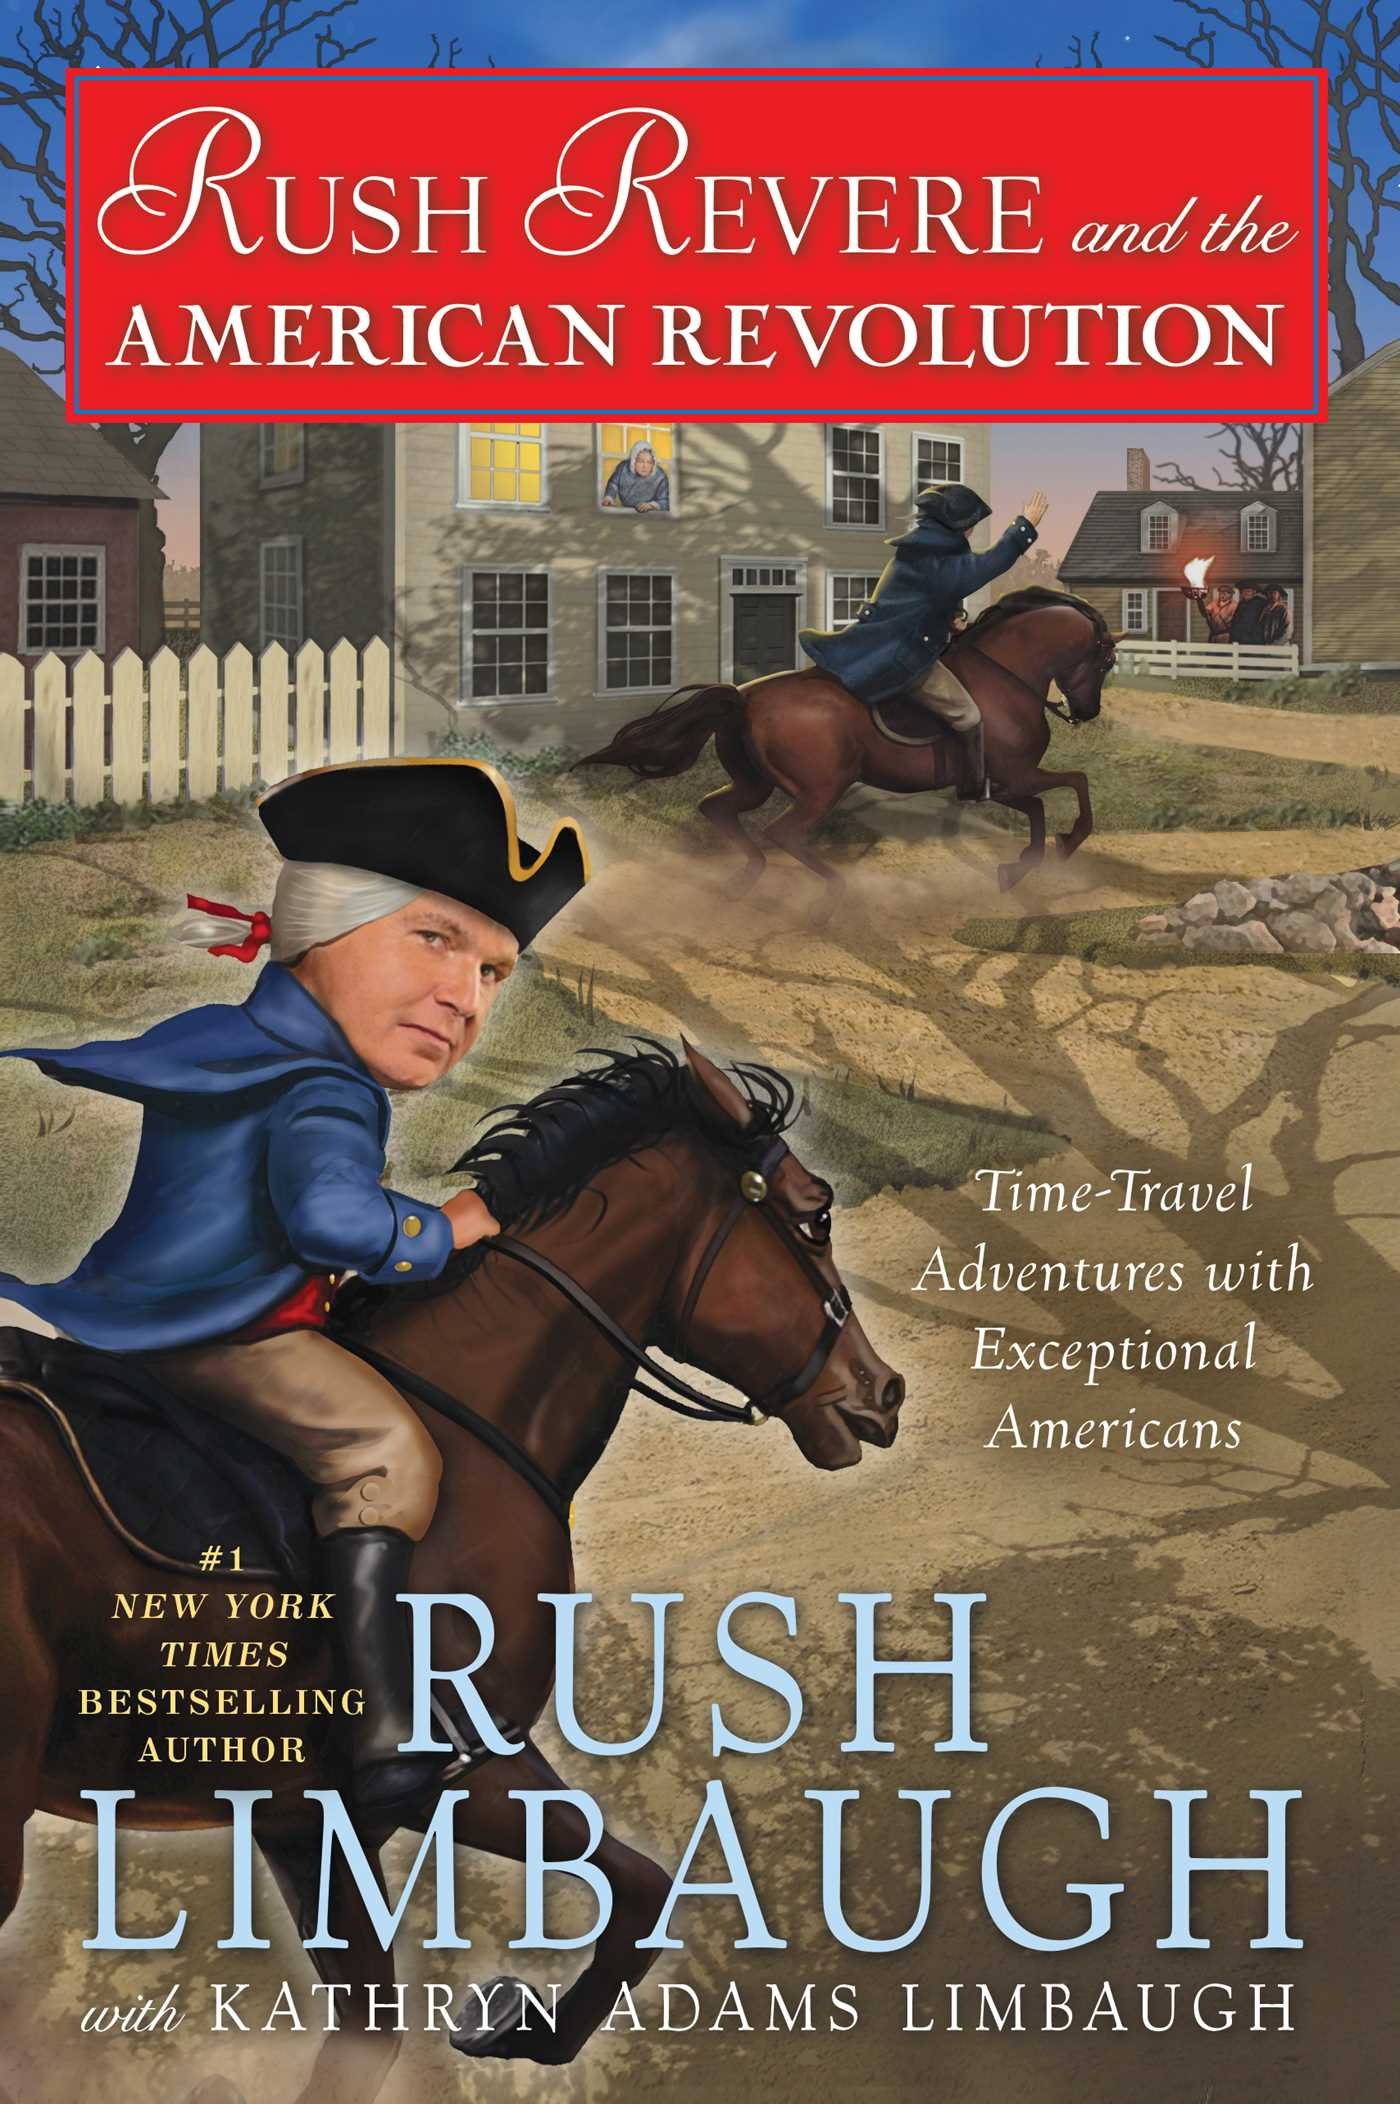 Rush revere and the american revolution 9781476789873 hr